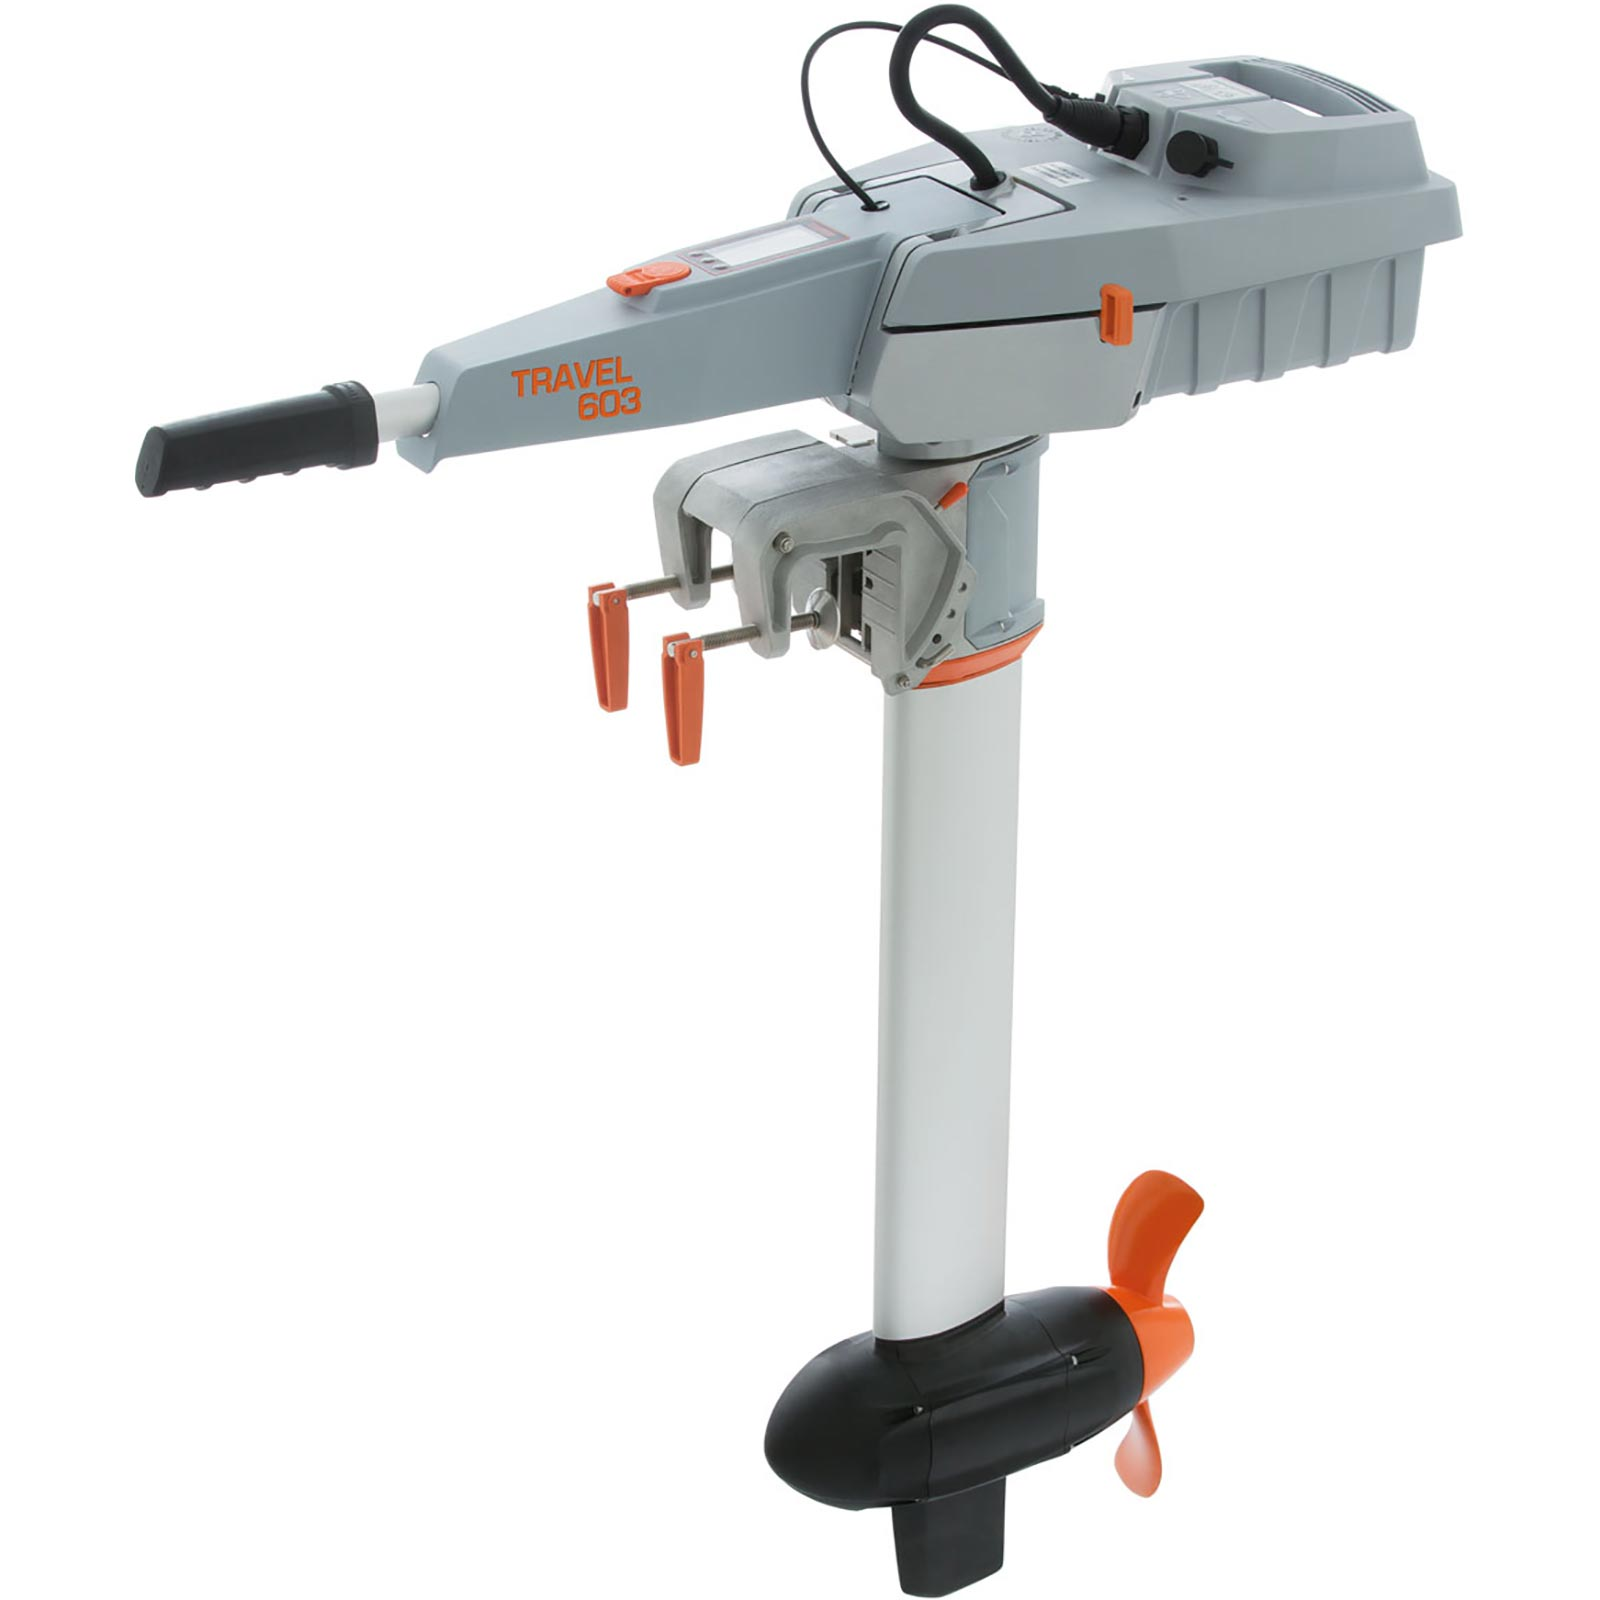 Torqeedo Travel 603 Electric Outboard Motor